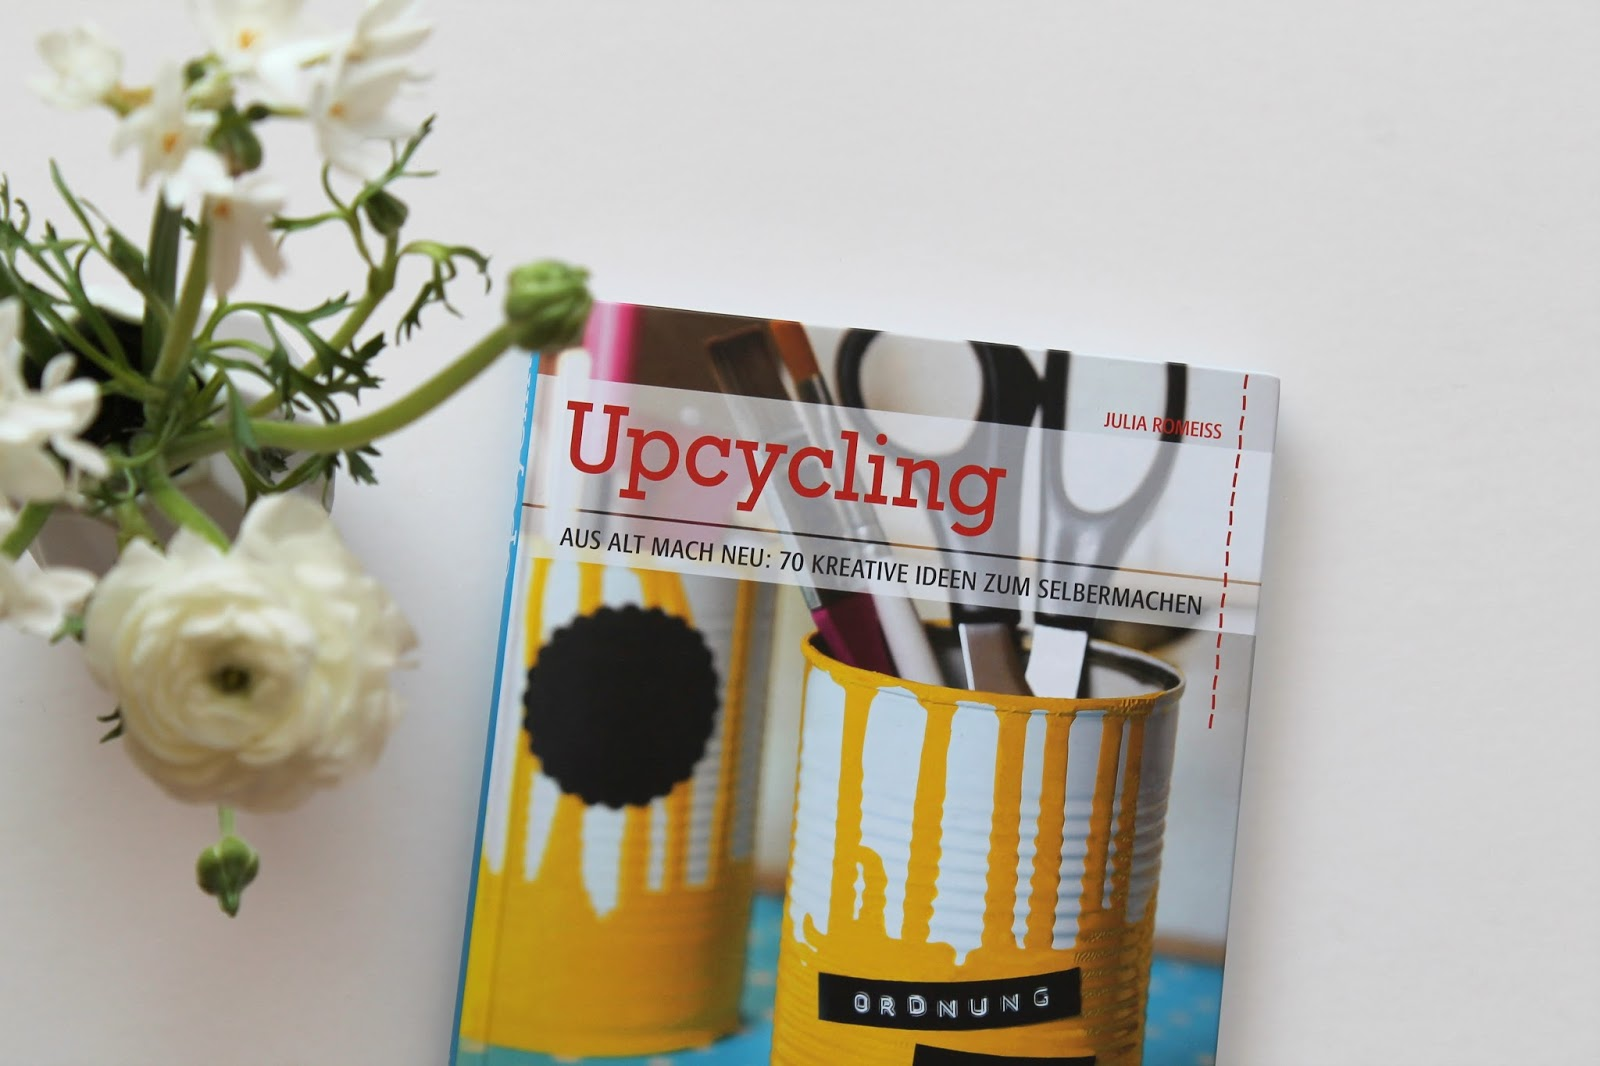 Buch Upcycling Julia Romeiss